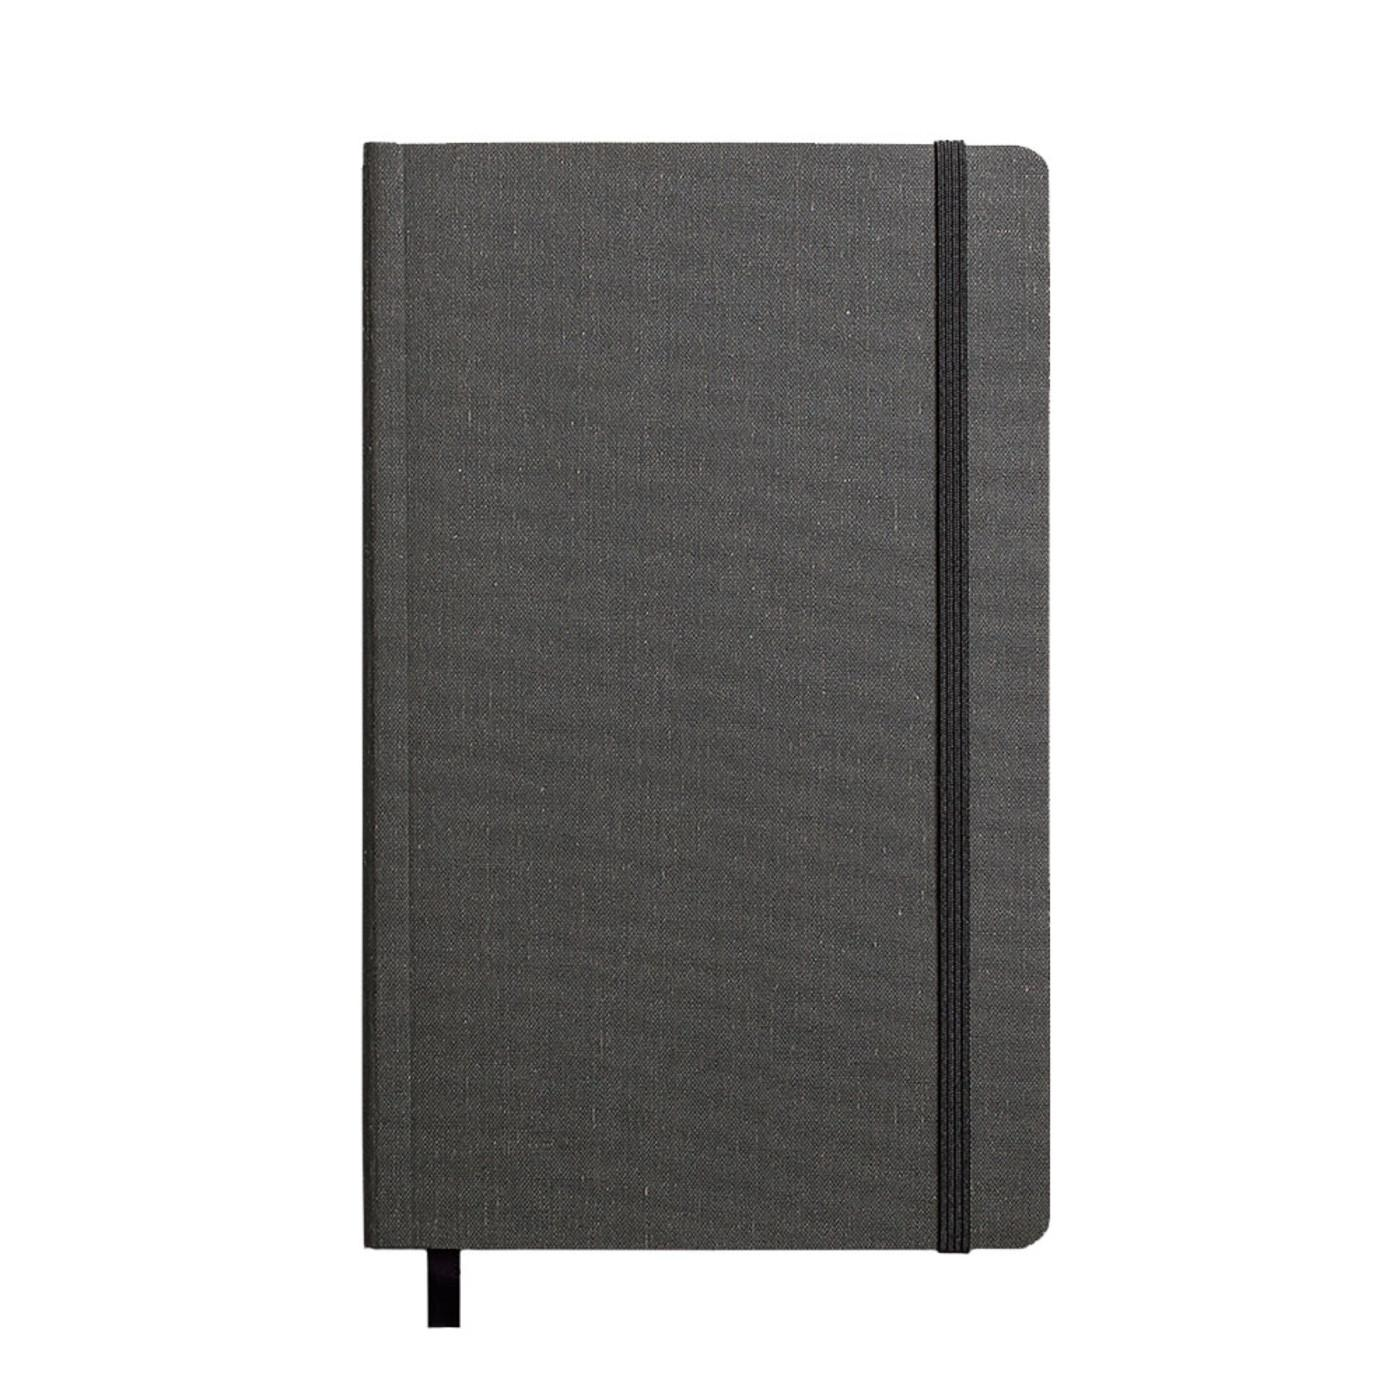 "Shinola Plain Soft Linen 5.25""x8.25"" Journal Charcoal Gray"